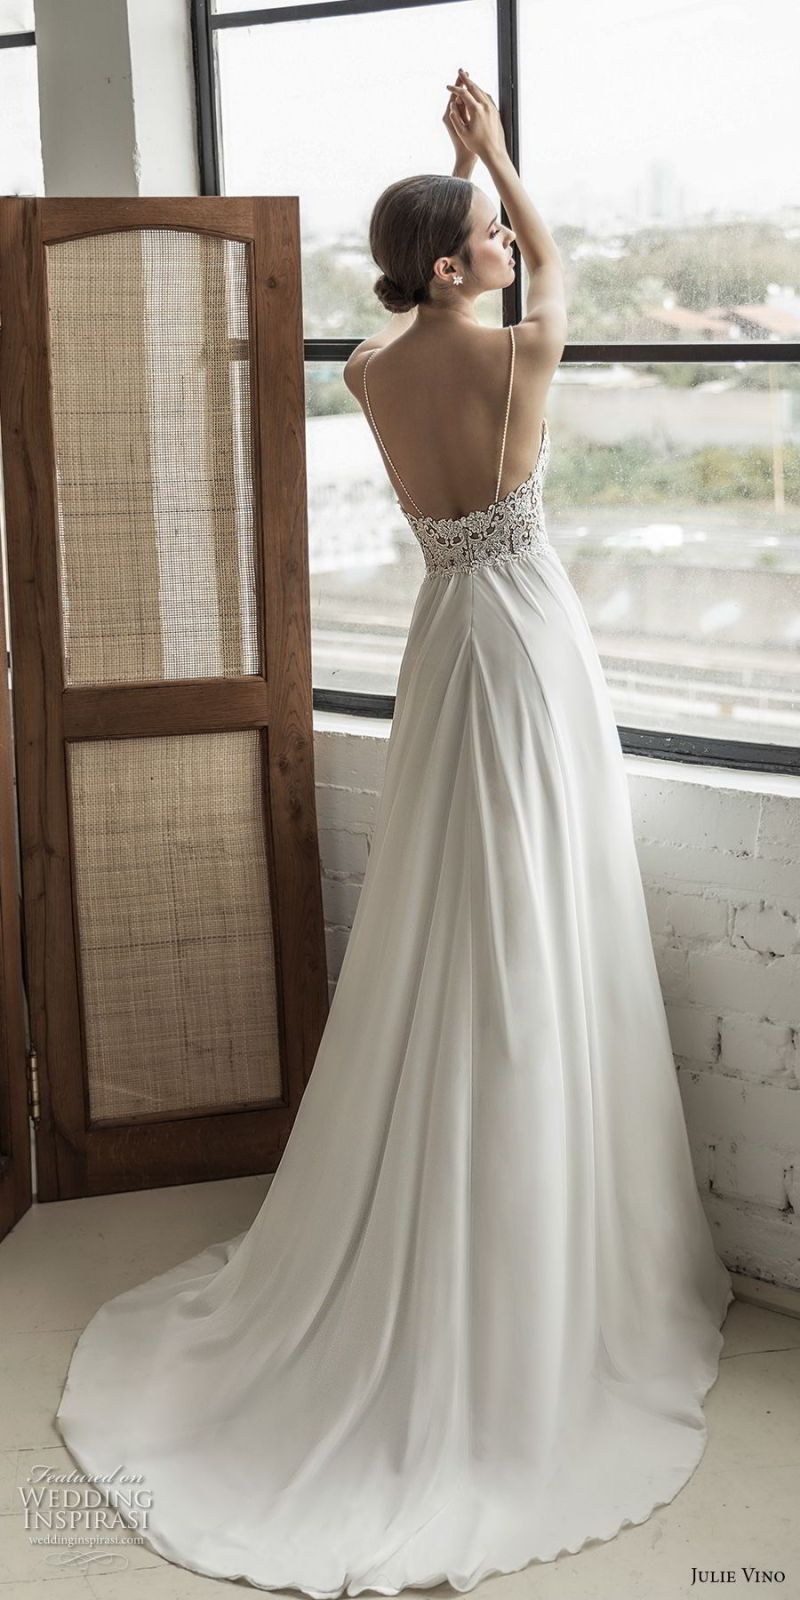 ad53a85ad5 Romanzo By Julie Vino 2019 Wedding Dresses The Love Story Bridal. Julie  Vino Fall 2018 Havana Strapless Off The Shoulder Deep Plunging Sweetheart  Neckline ...